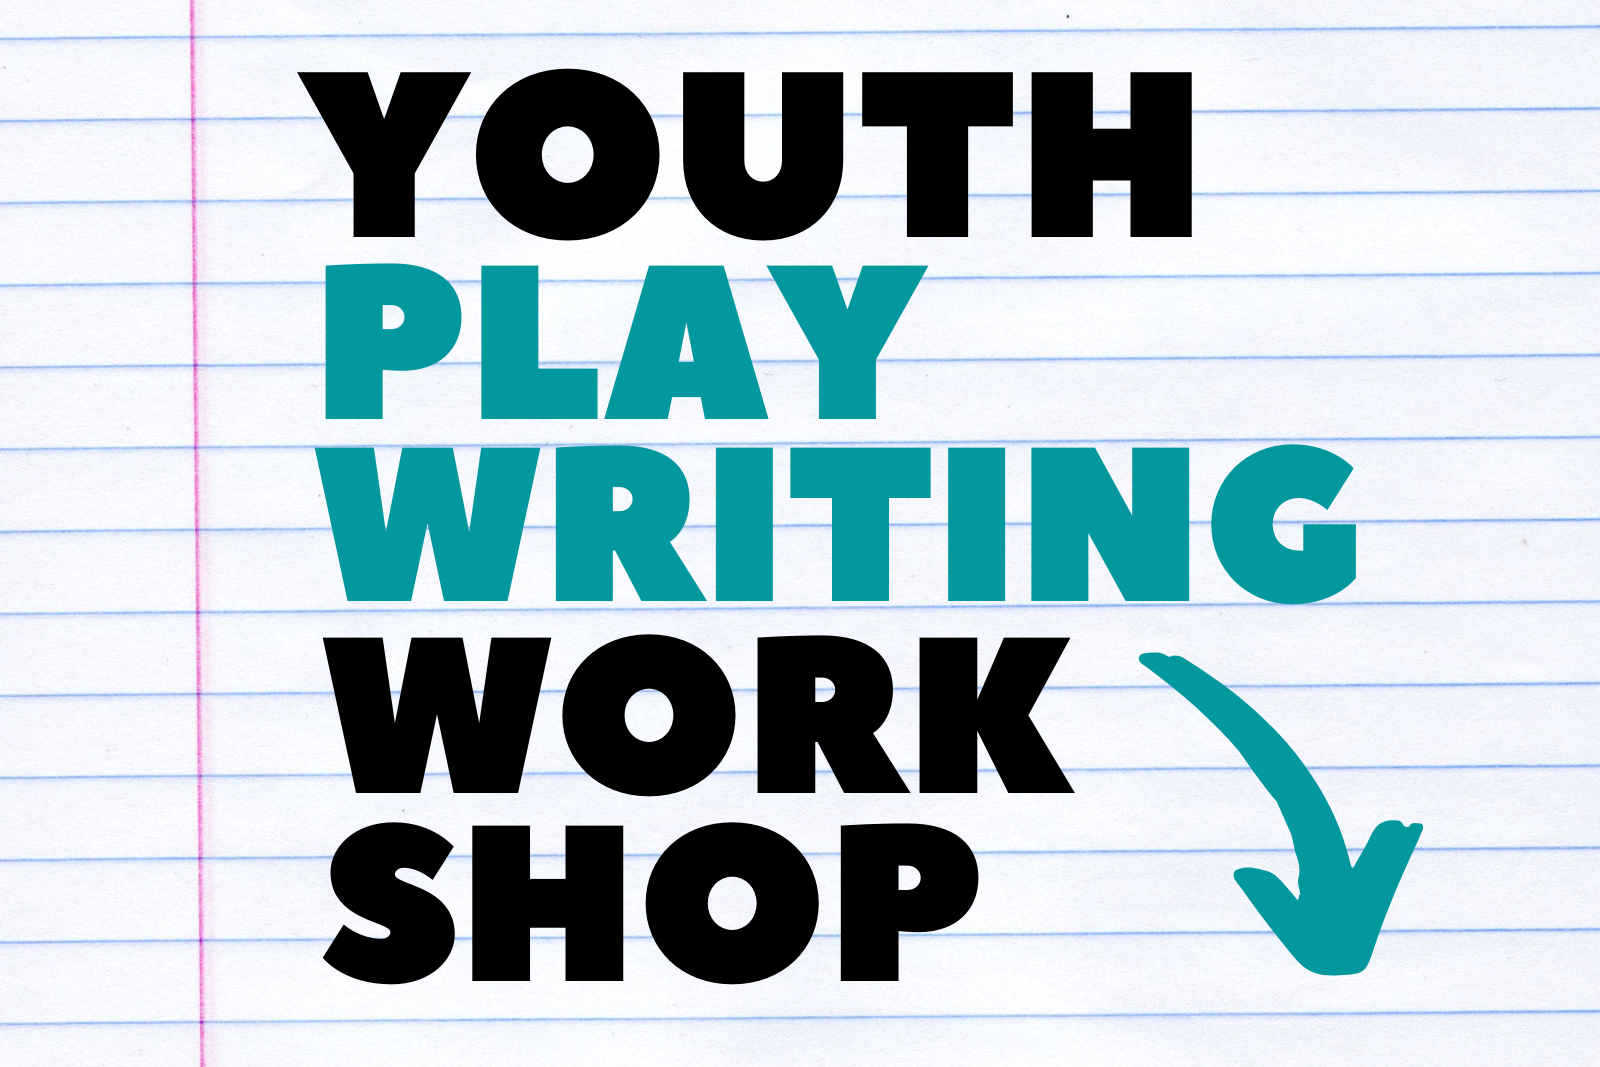 Youth Play Writing Workshop text over white lined notebook paper